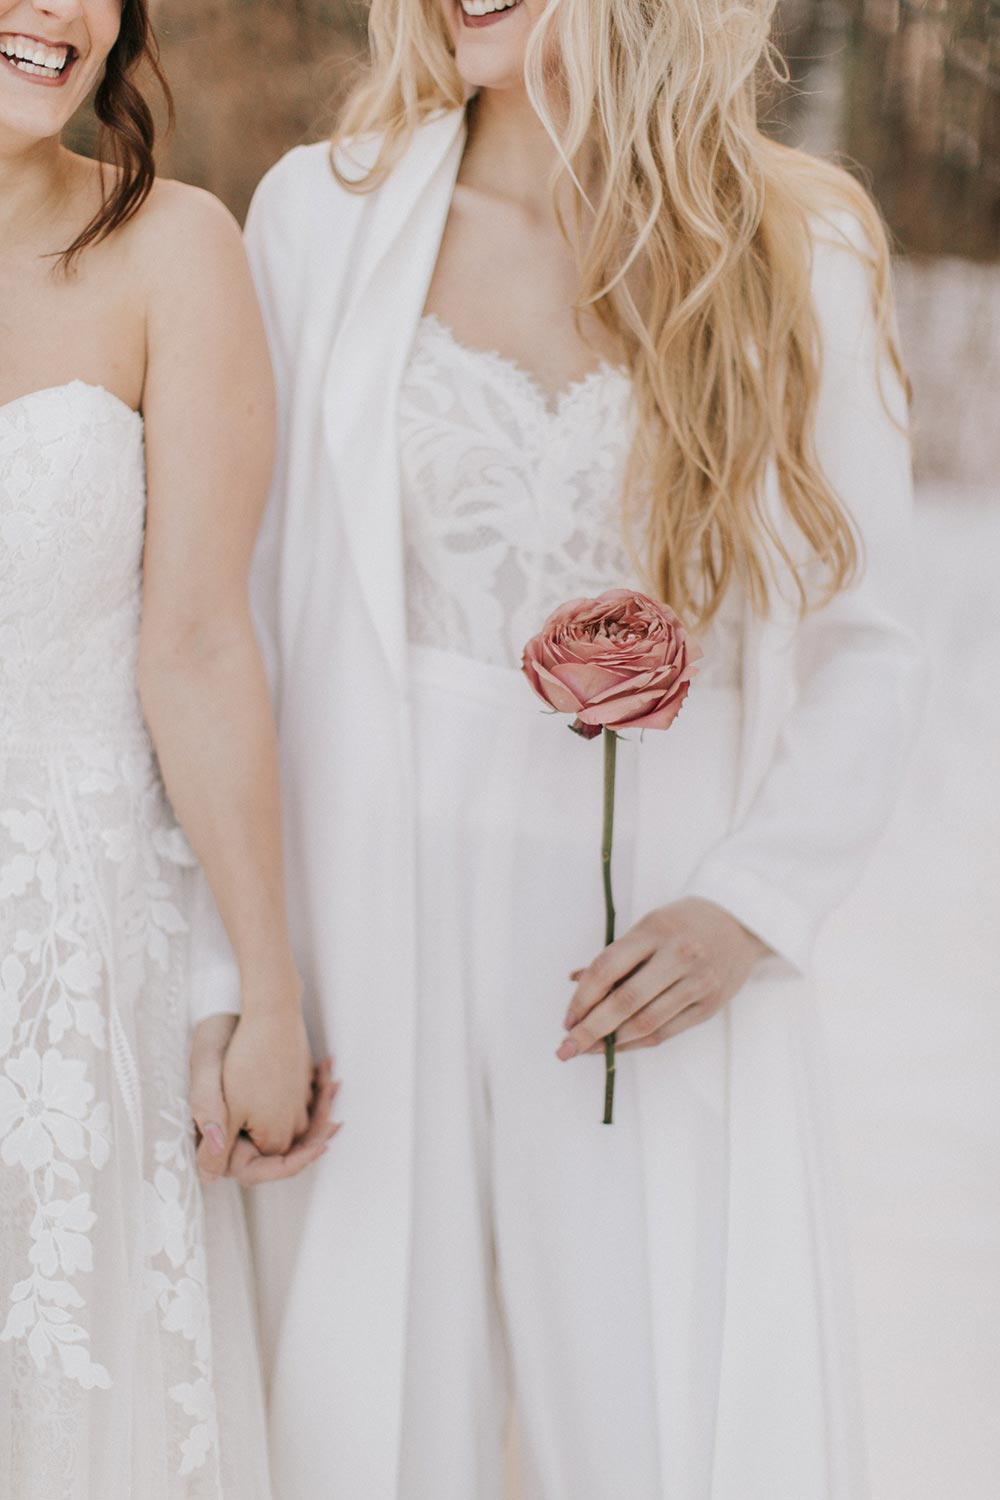 bridal pantsuit with strapless wedding dress